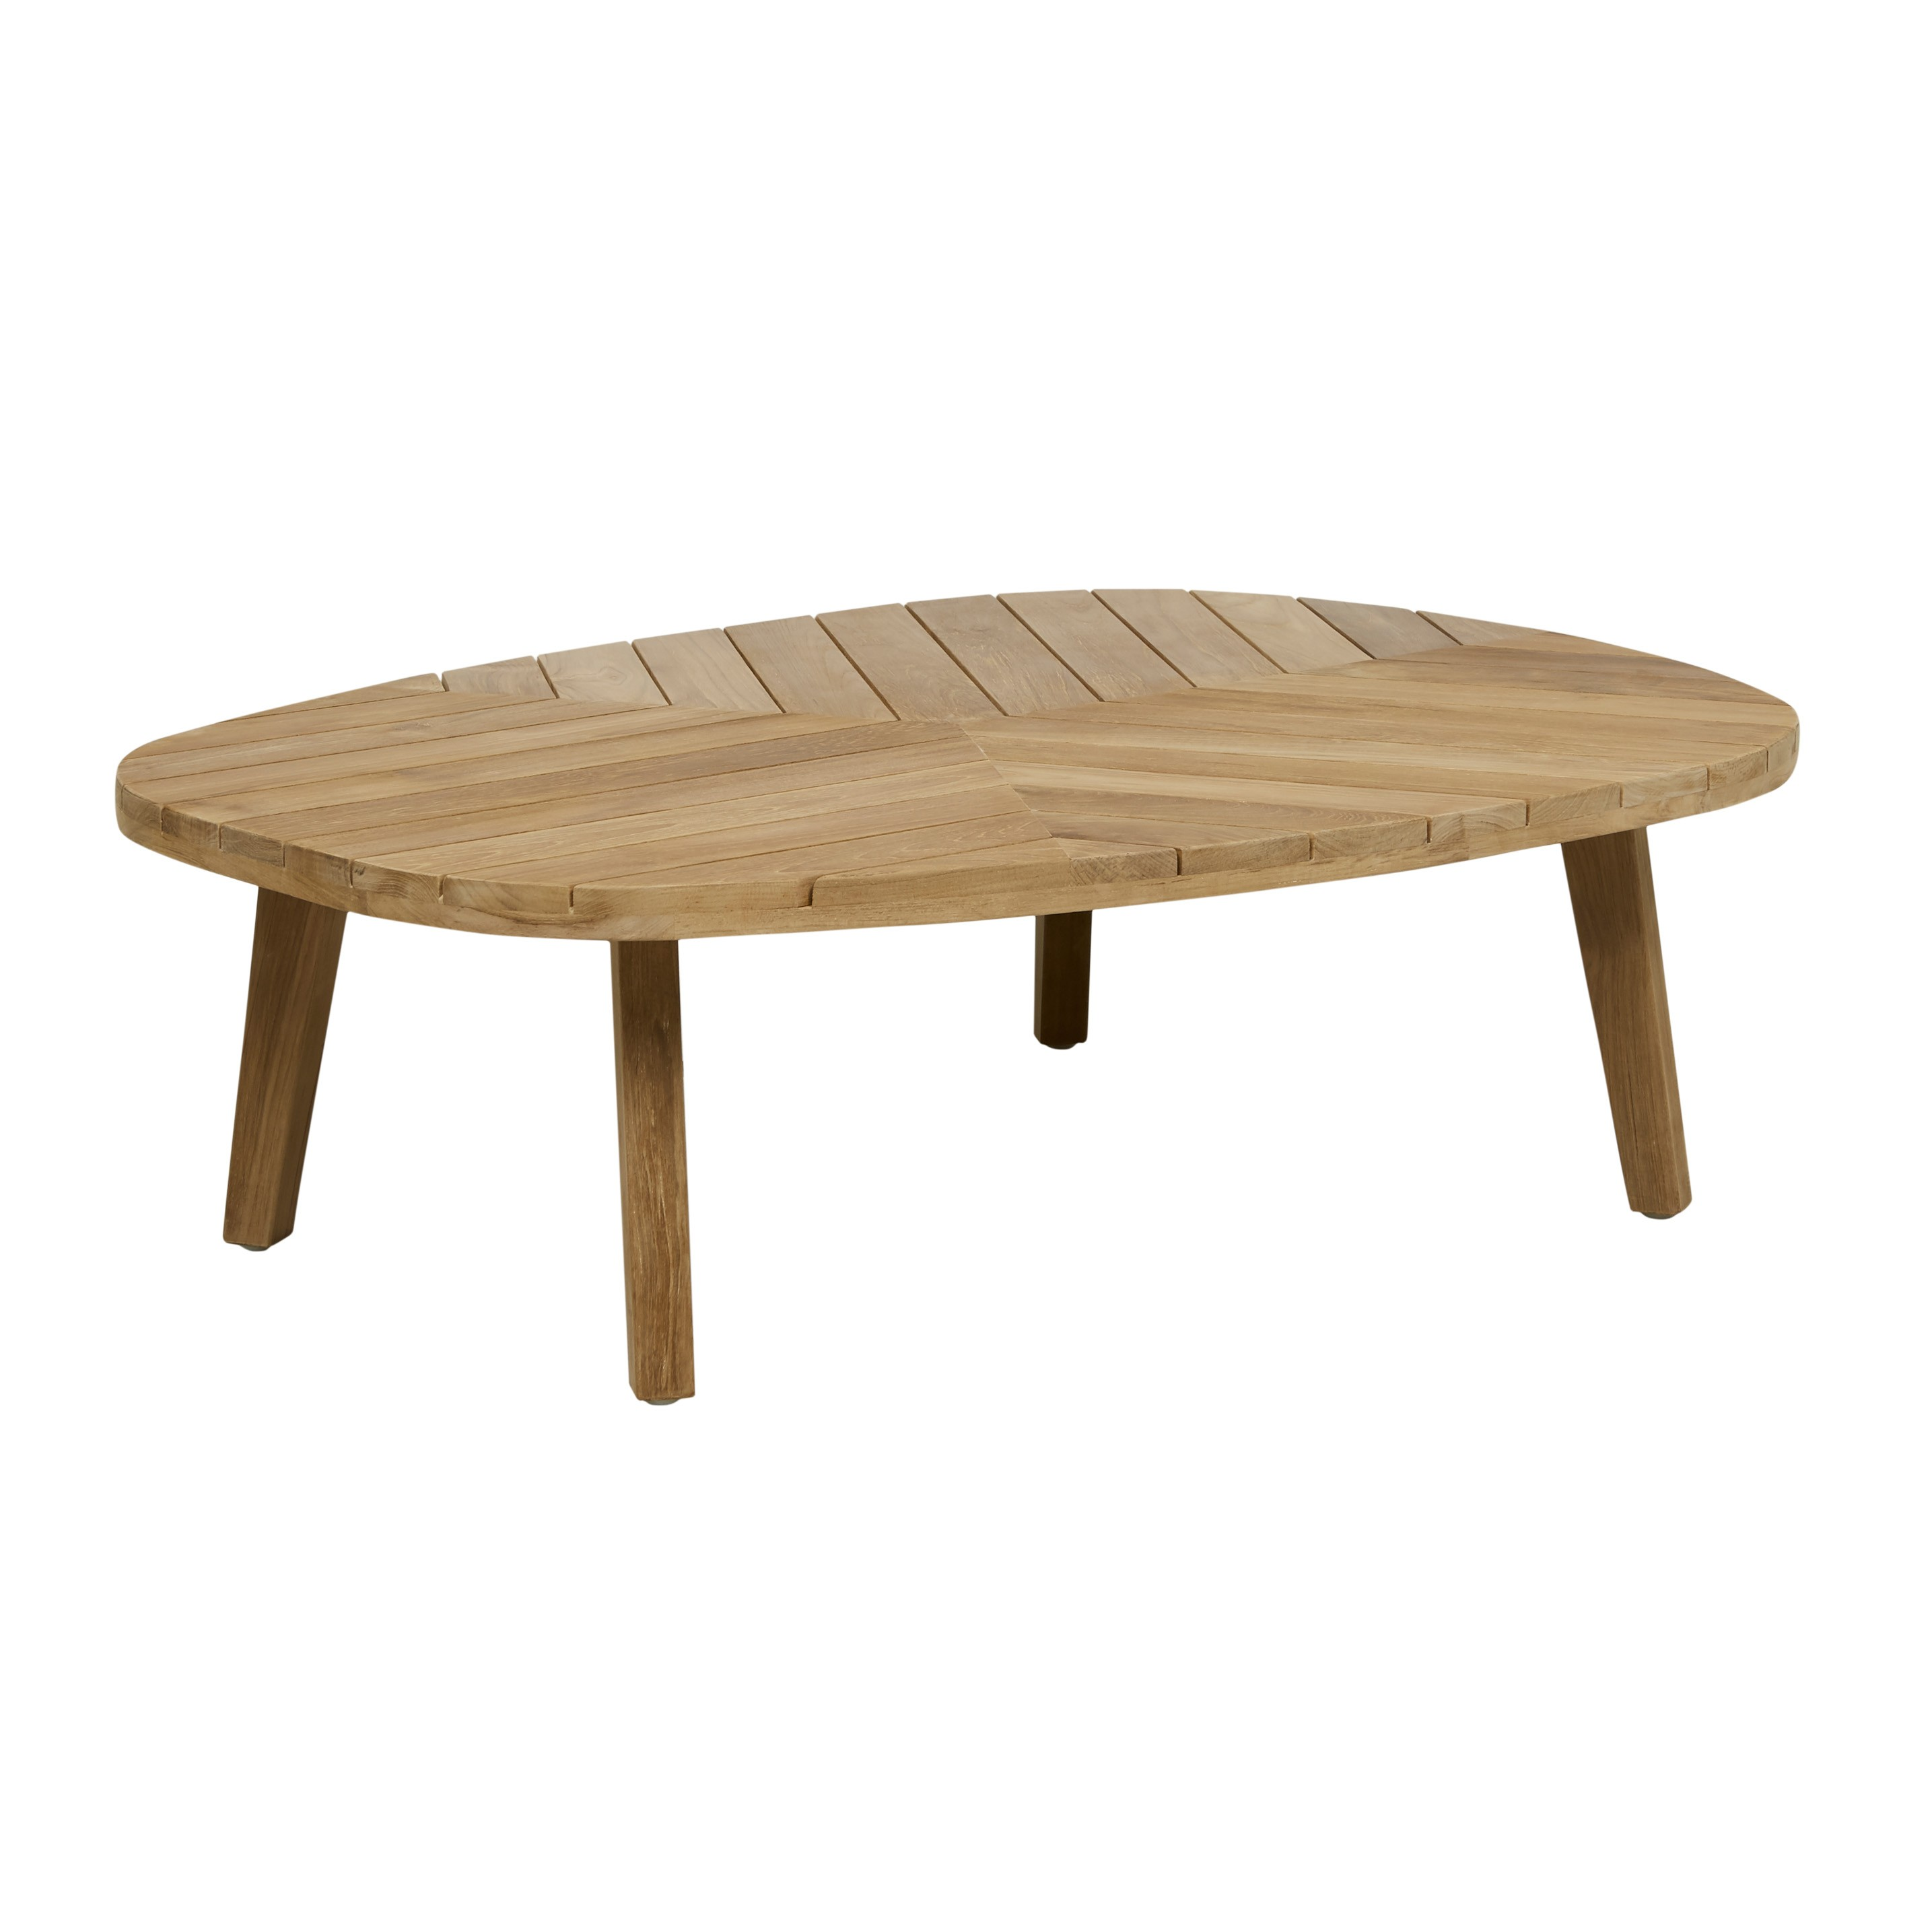 Furniture Hero-Images Coffee-Side-Tables-and-Trolleys sonoma-oval-coffee-table